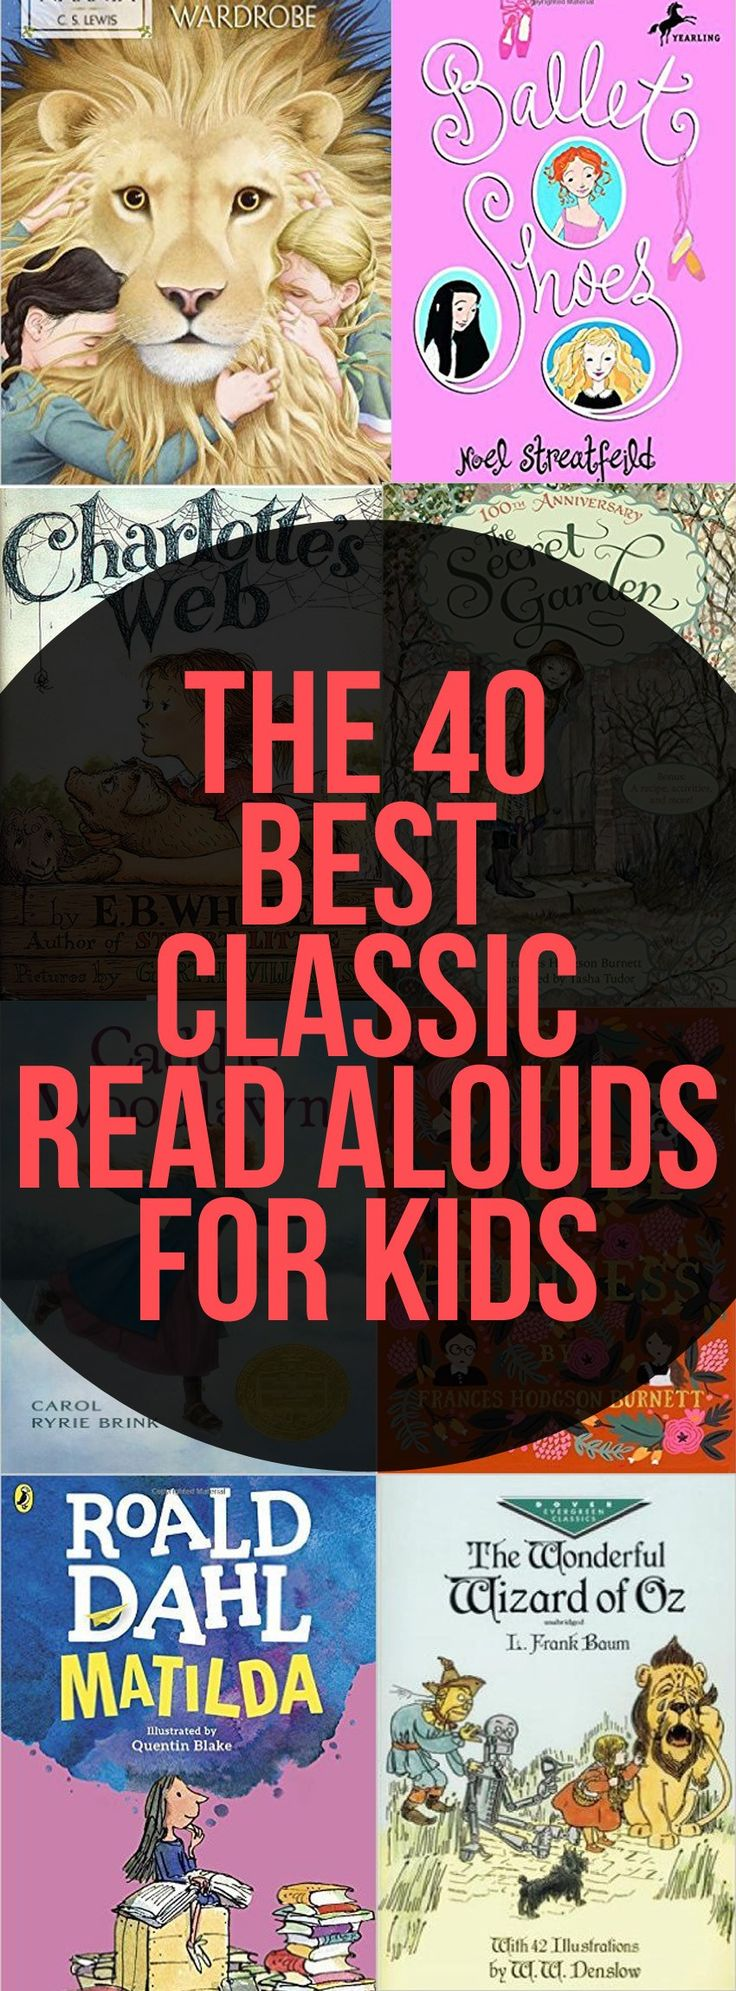 The 40 Best Classic Read Alouds for Kids